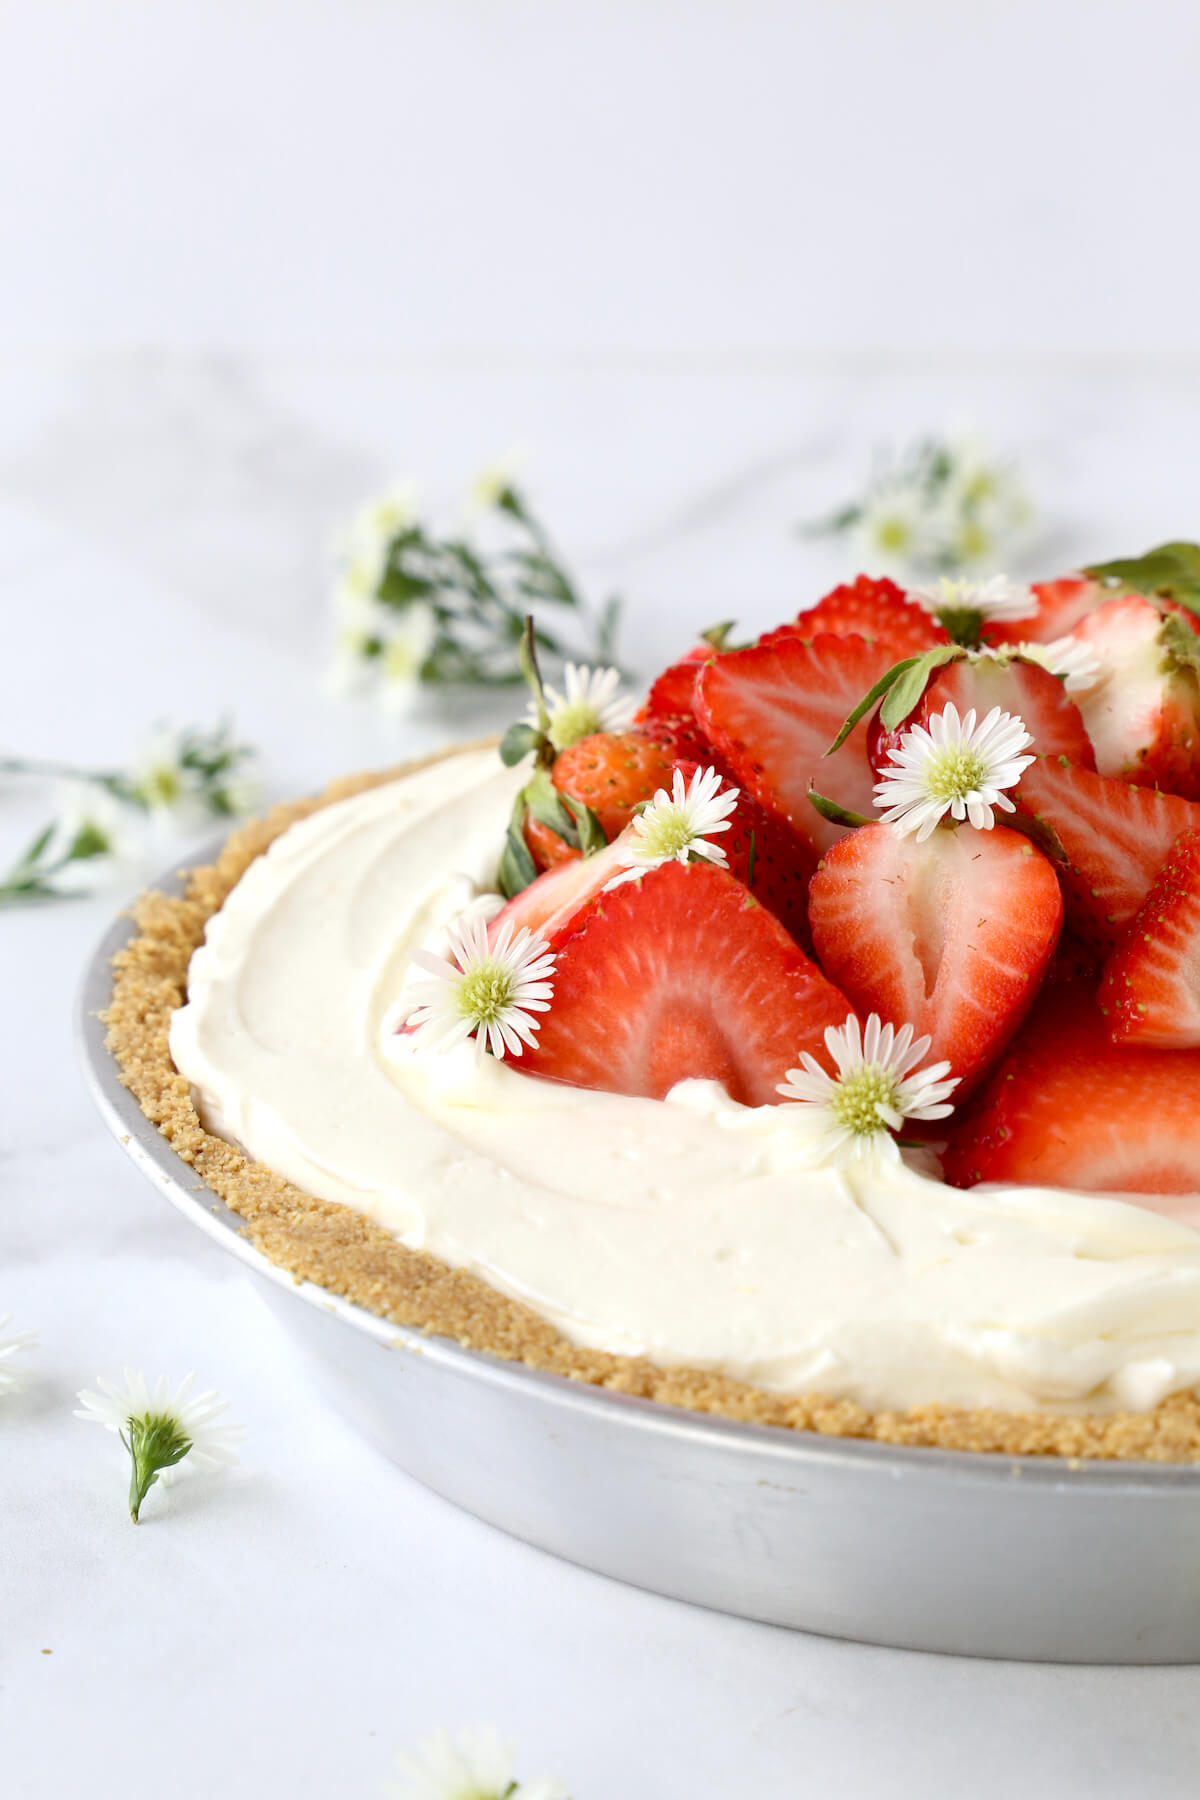 Graham cracker crust, whipped cheesecake filling, topped with fresh strawberries.